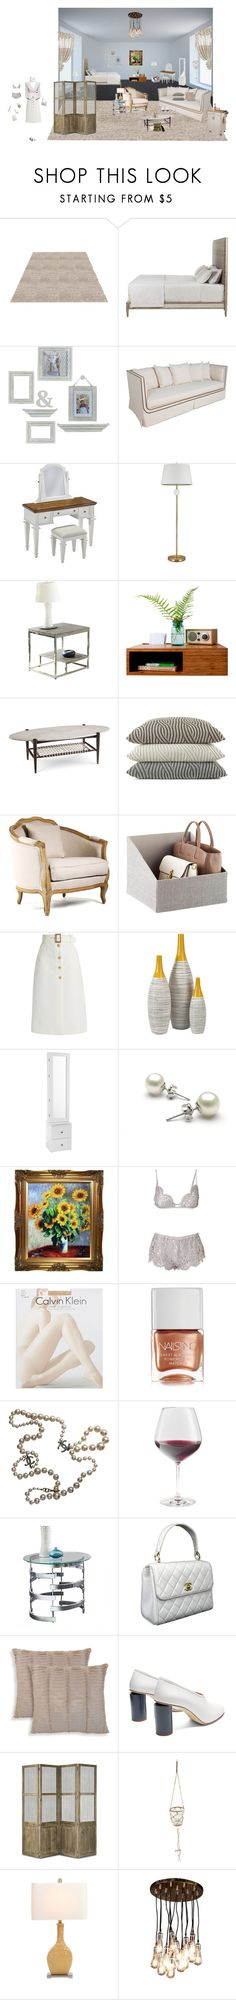 """#428"" by nicoleeboni ❤ liked on Polyvore featuring beauty, Melannco, Gabby, Home Styles, cupcakes and cashmere, Steve Silver, A.R.T. Furniture, Peacock Alley, Maison Blanc and Bella Freud"